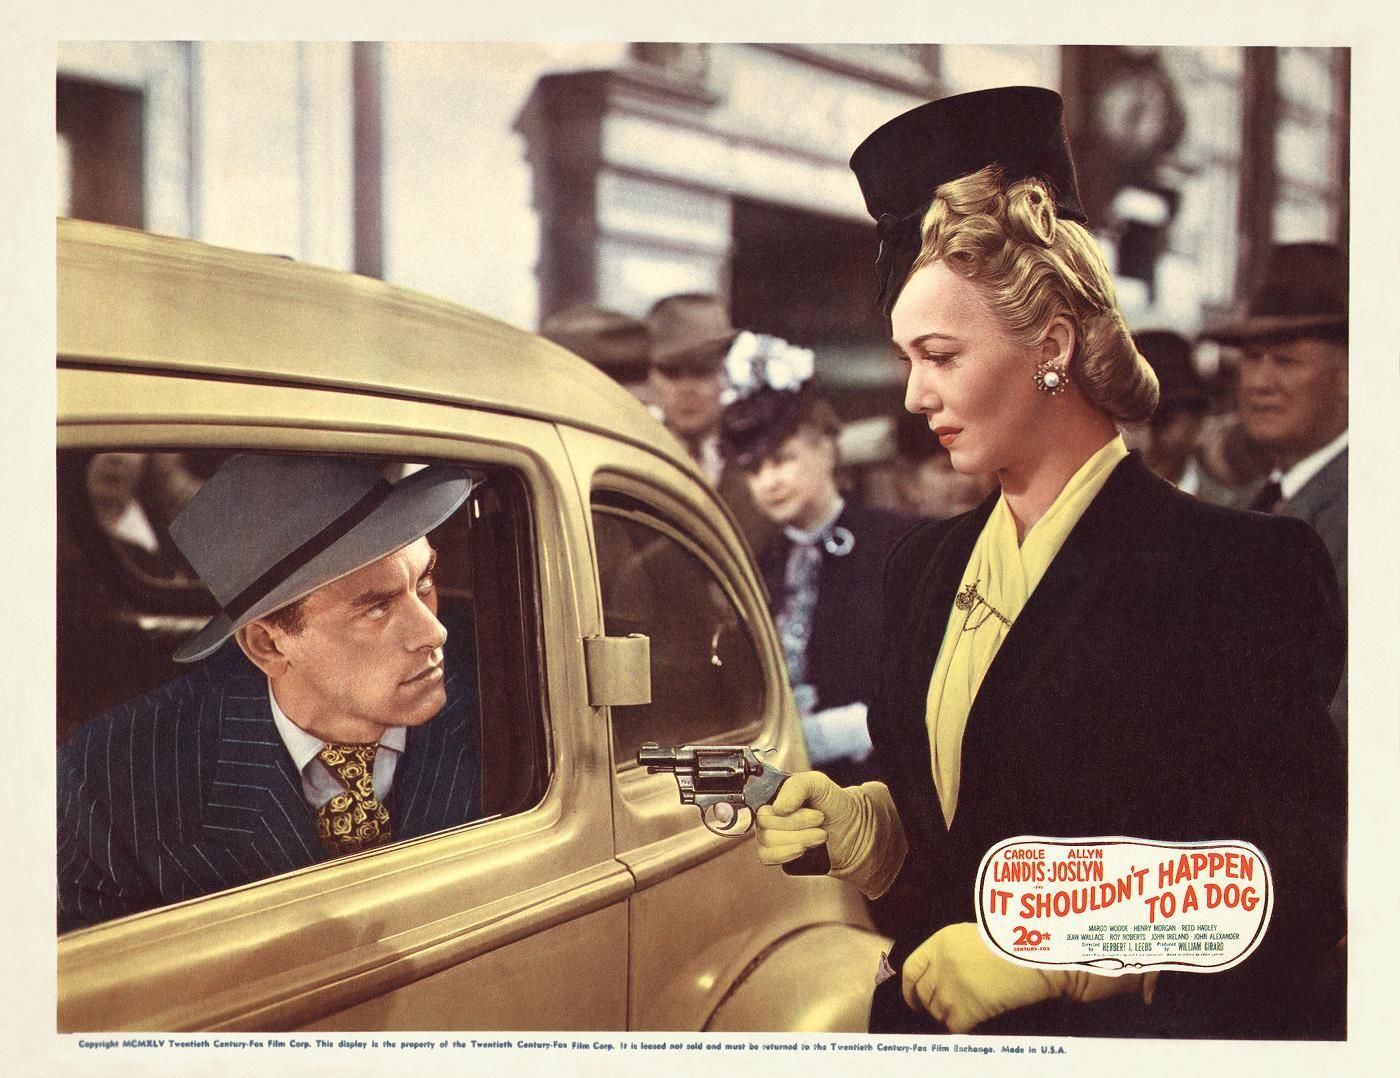 John Ireland and Carole Landis in It Shouldn't Happen to a Dog (1946)